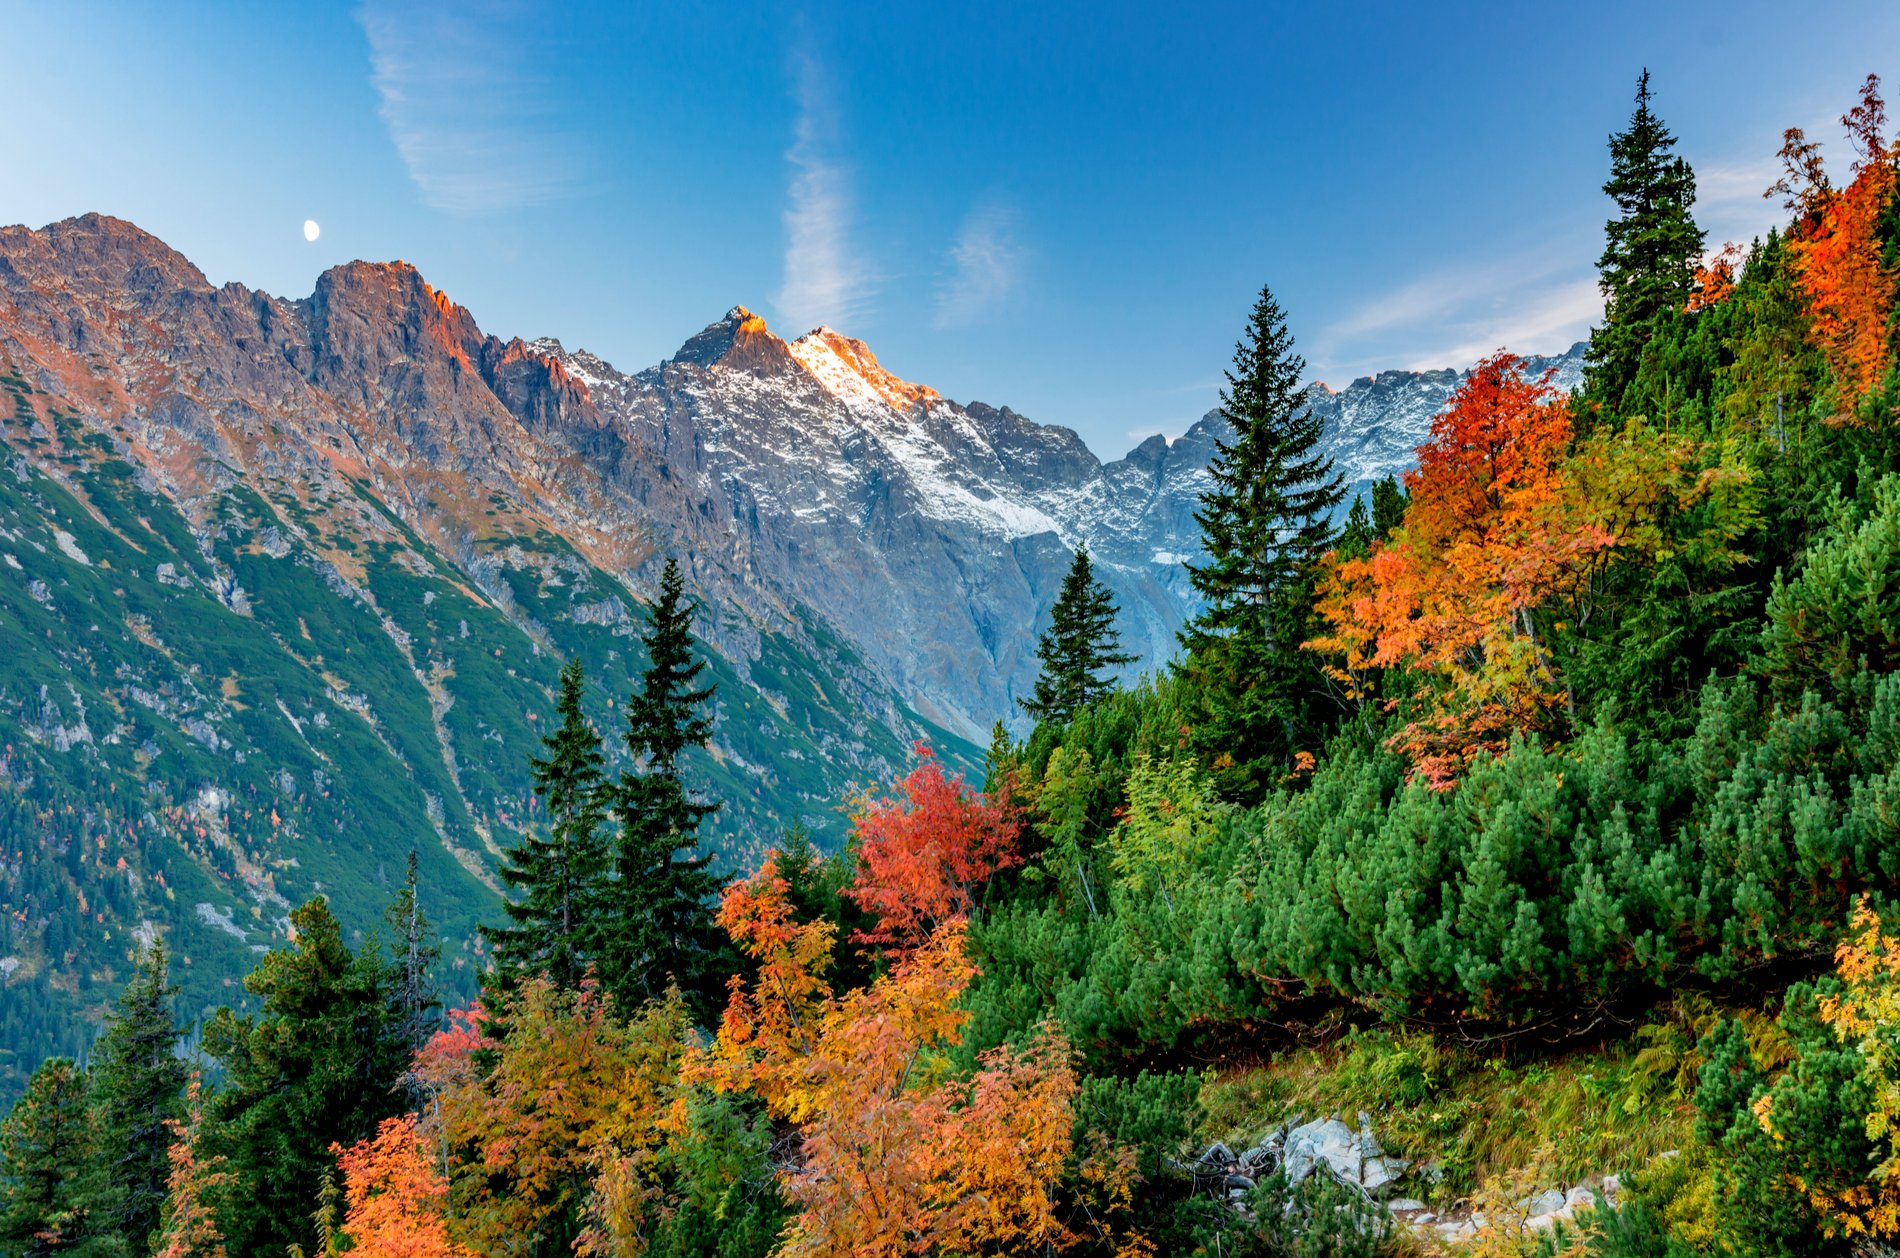 walking holidays in europe, New walking holidays for 2018, walking holidays in europe, europe walking holidays, walking holidays europe, walking tours in europe, the high tatras complete